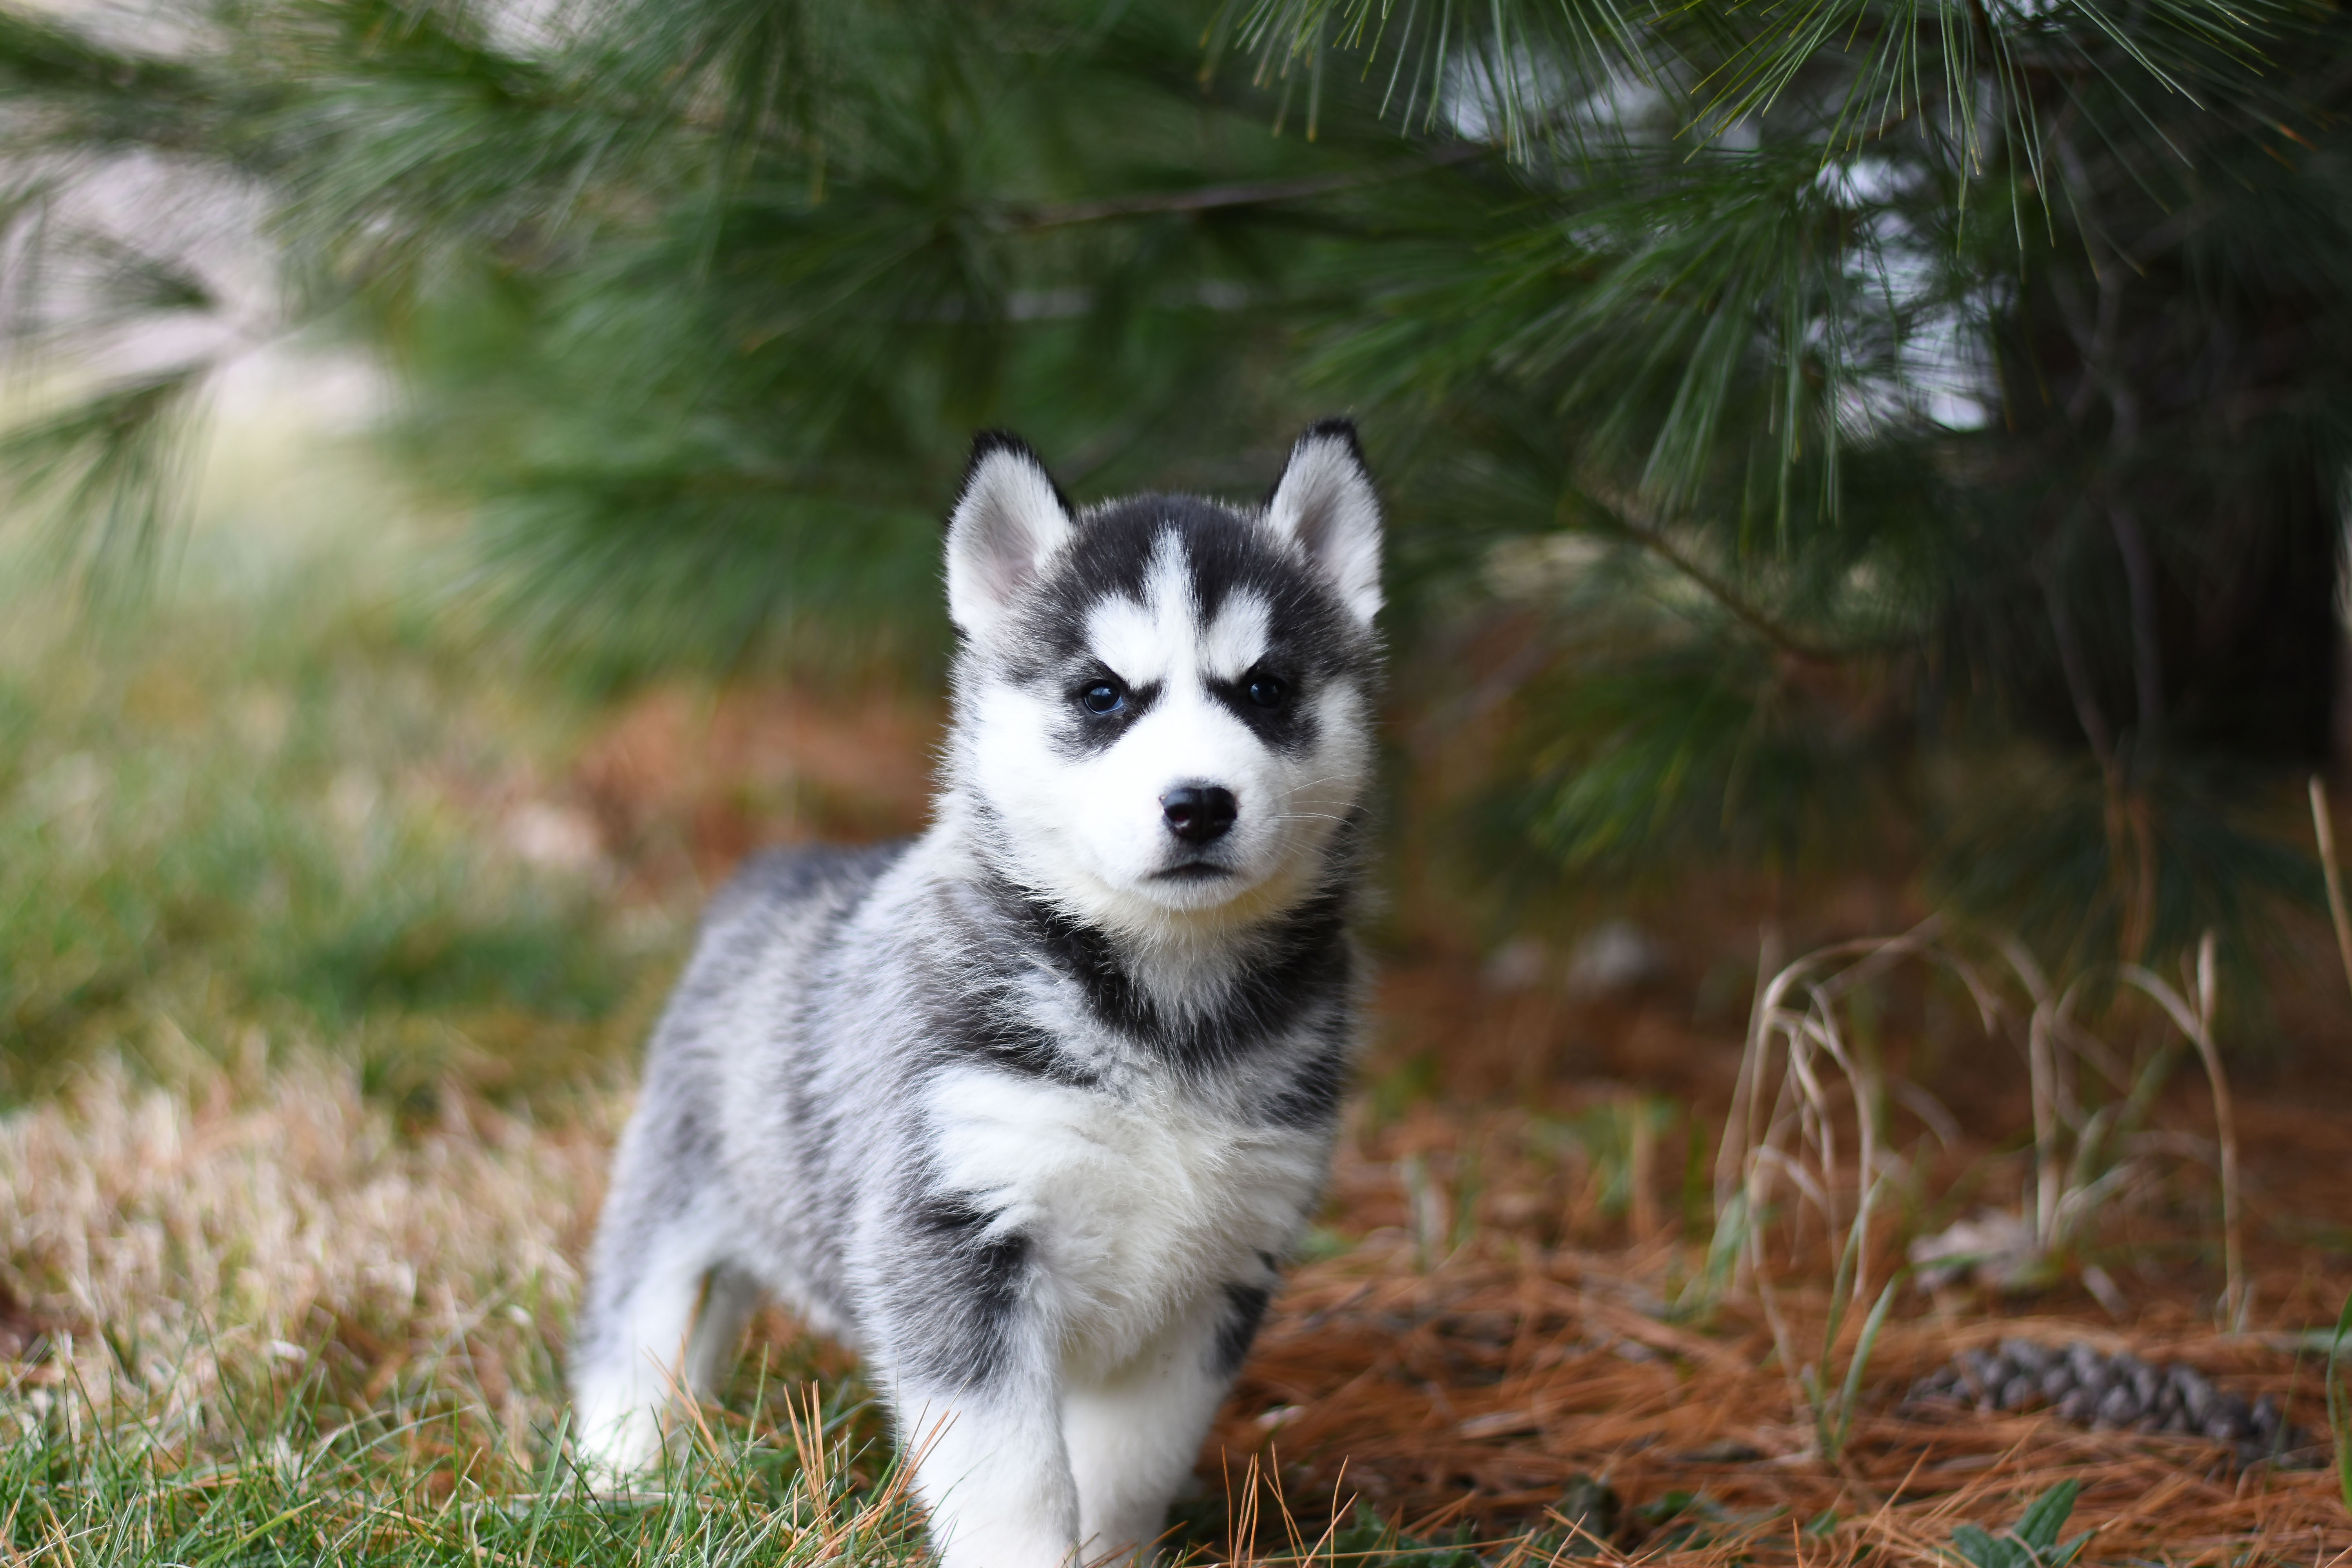 Black And White Siberian Husky Puppy On Brown Grass Field Free Stock Photo